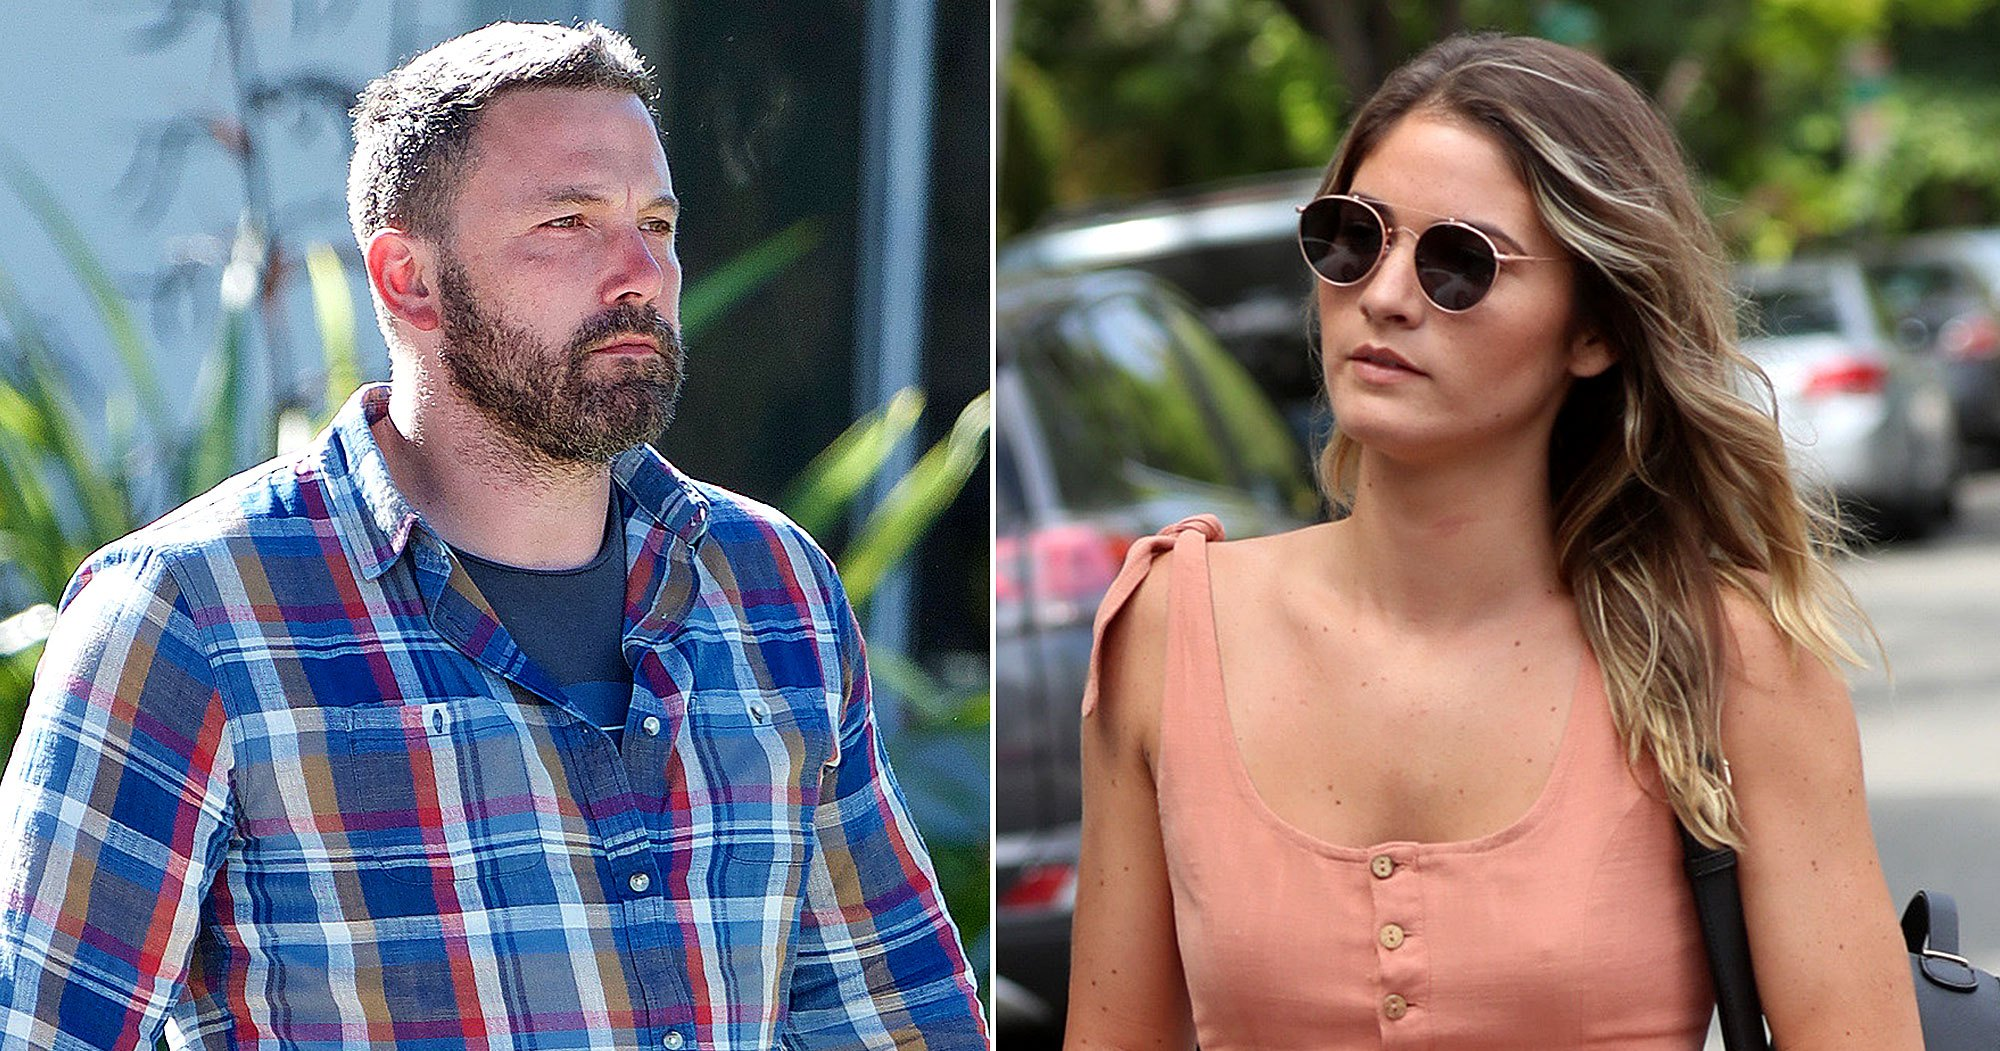 Why Ben Affleck's Ex Shauna Sexton Is 'Scarred' After Breakup